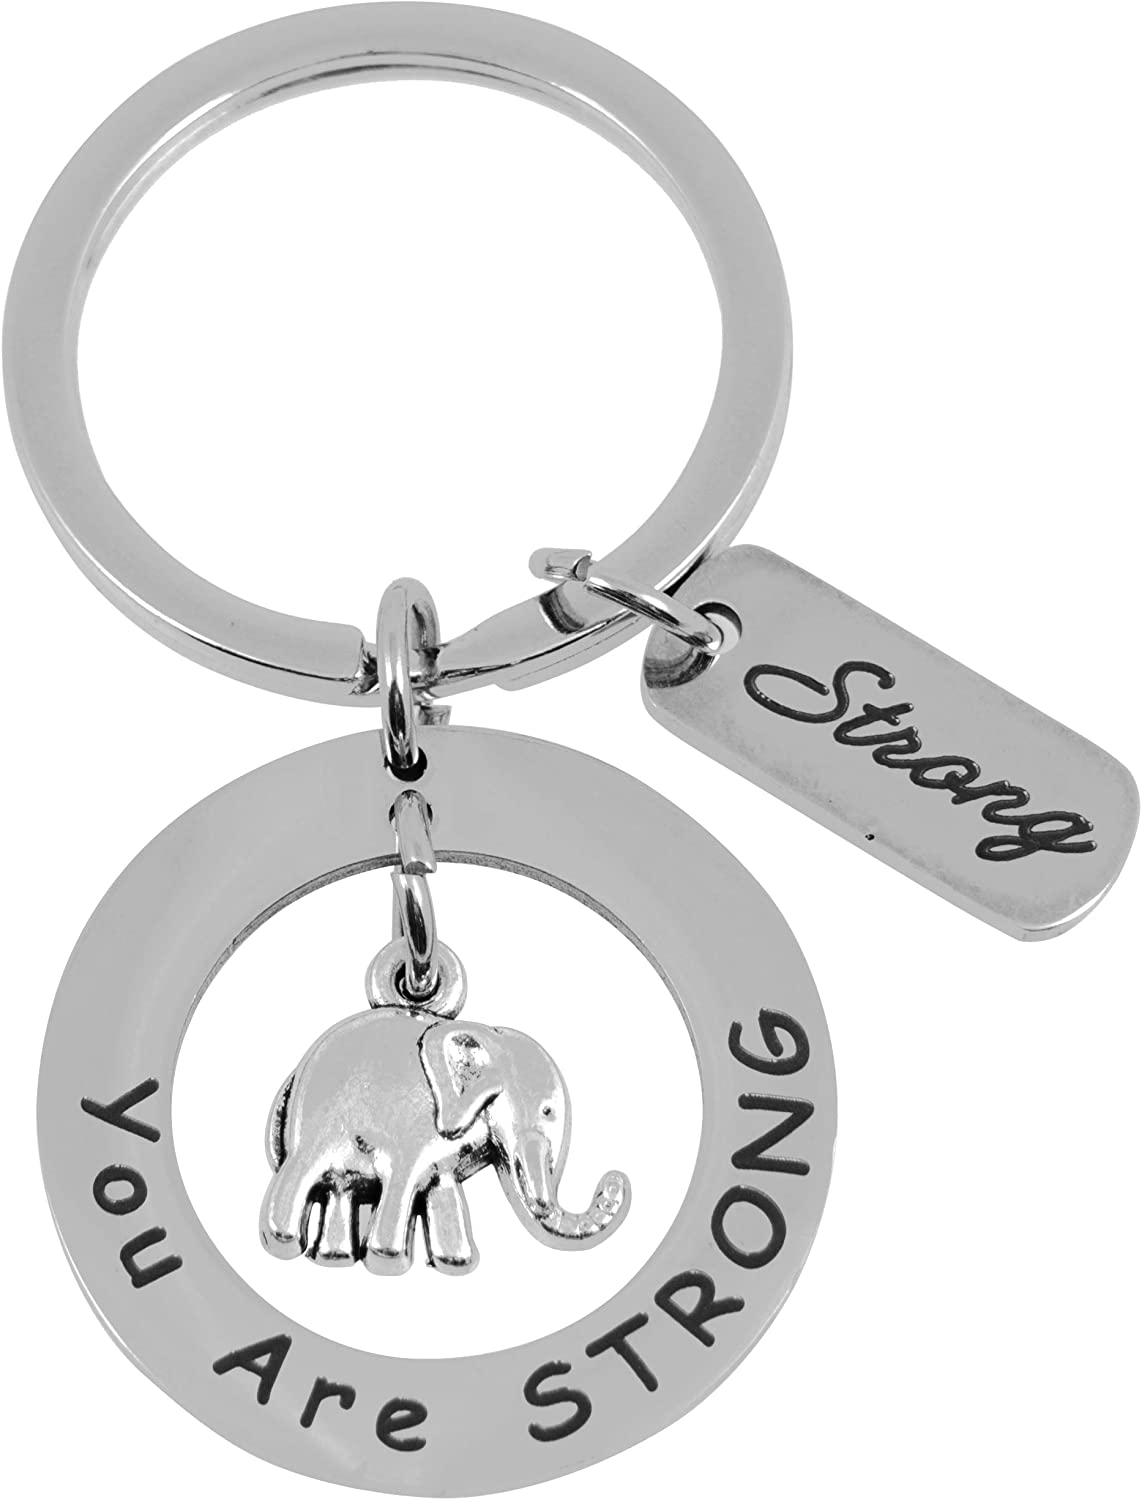 OutFun 2-Pack Elephant Gifts for Women - You are Strong - Elephant Jewelry Gift for Women - Encouragement Gifts for Women